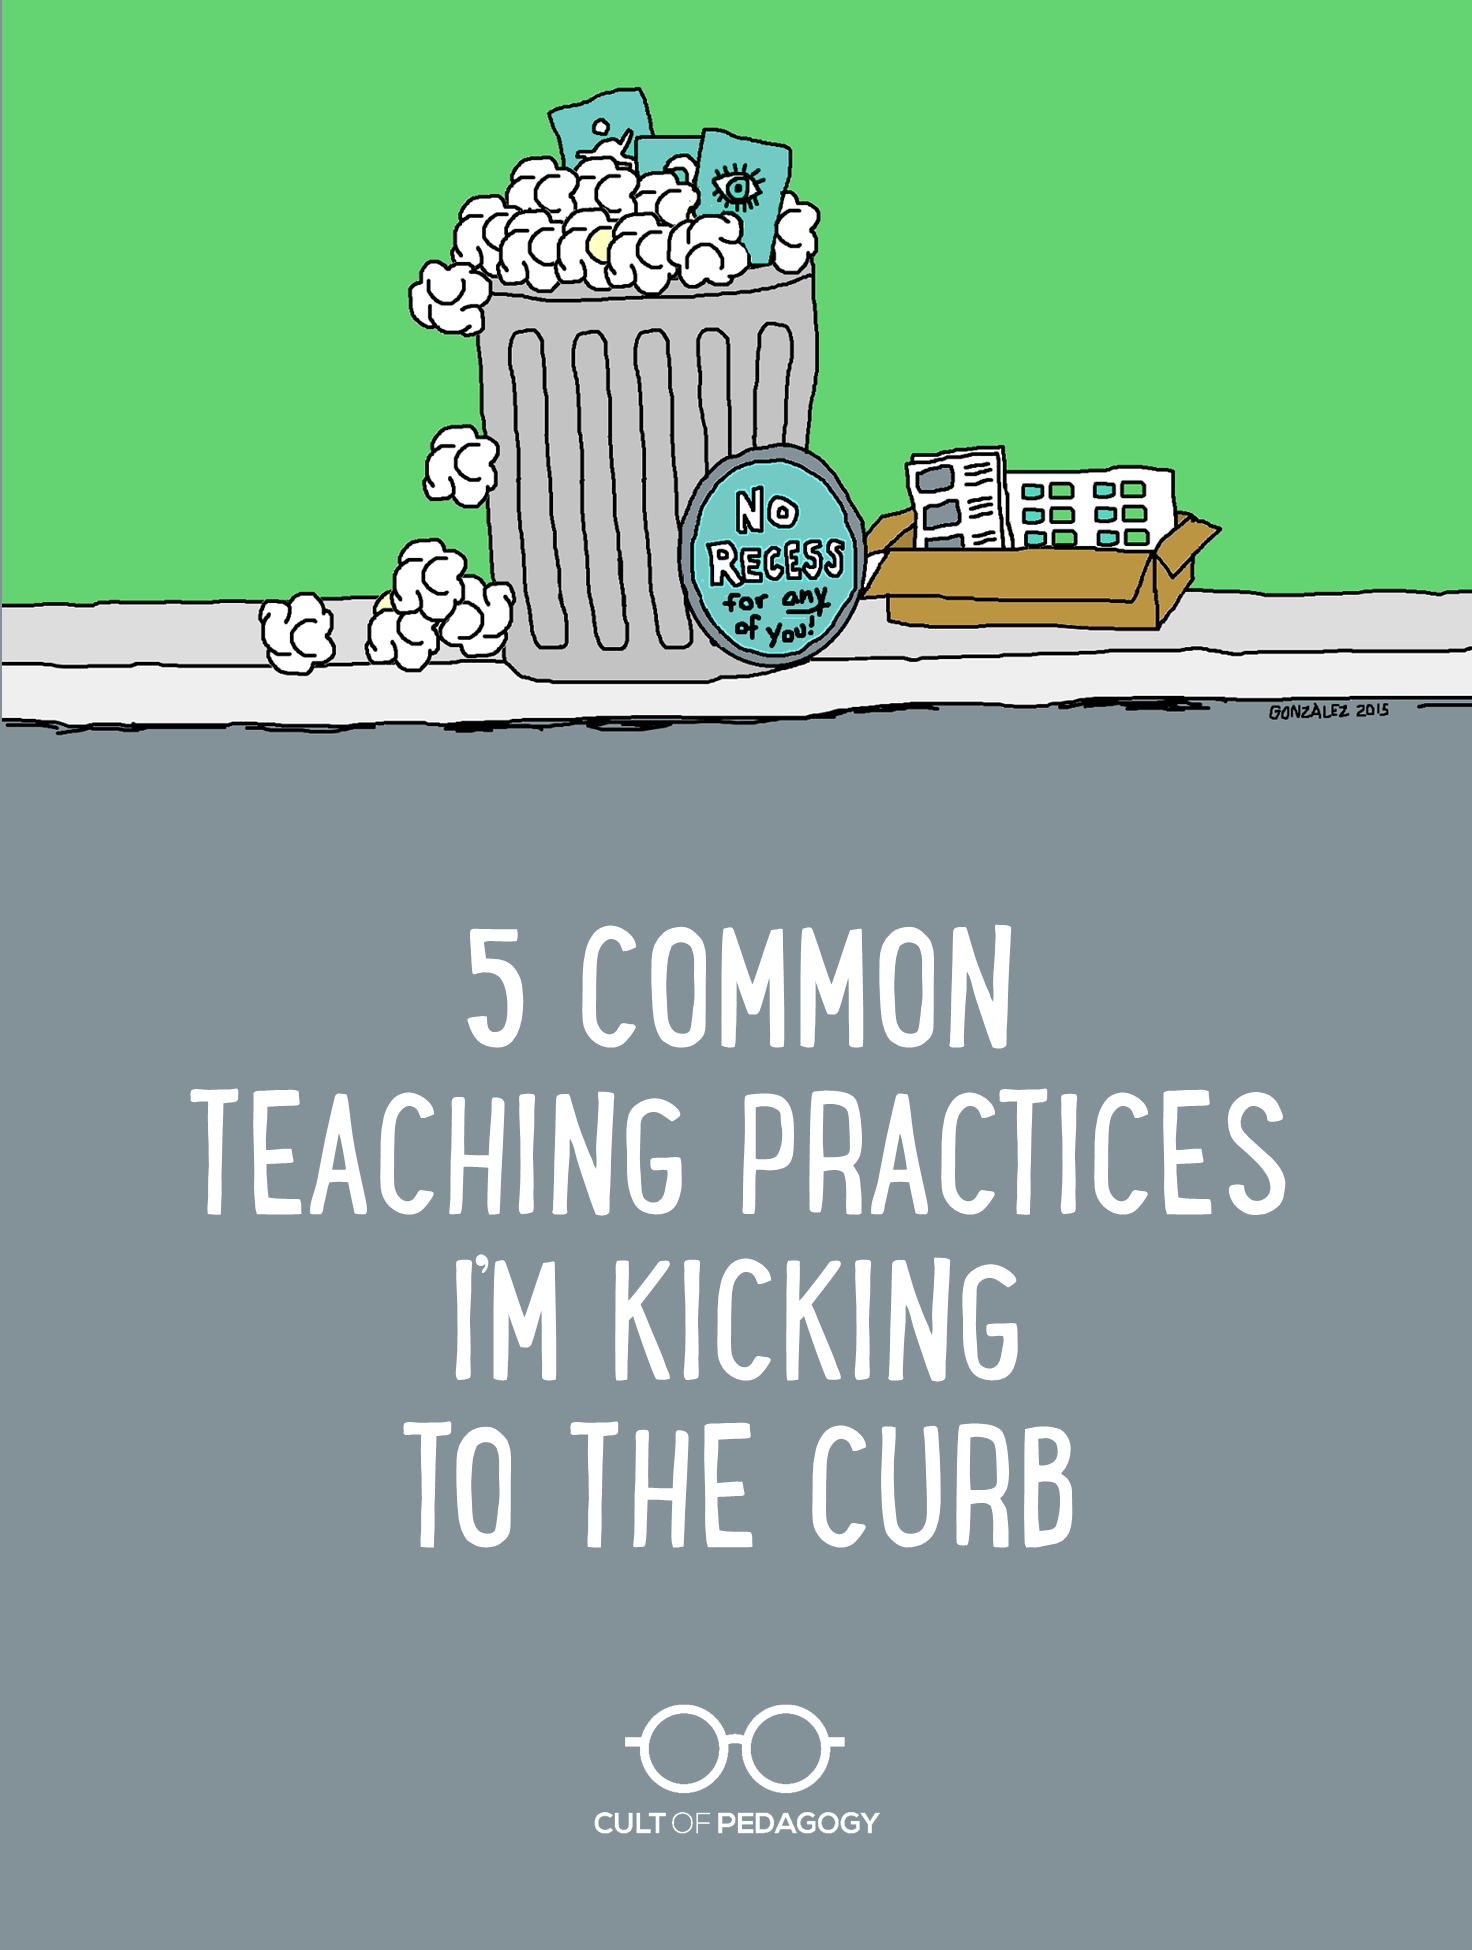 Adhd Supports Are Often Ineffective >> 5 Teaching Practices I M Kicking To The Curb Cult Of Pedagogy